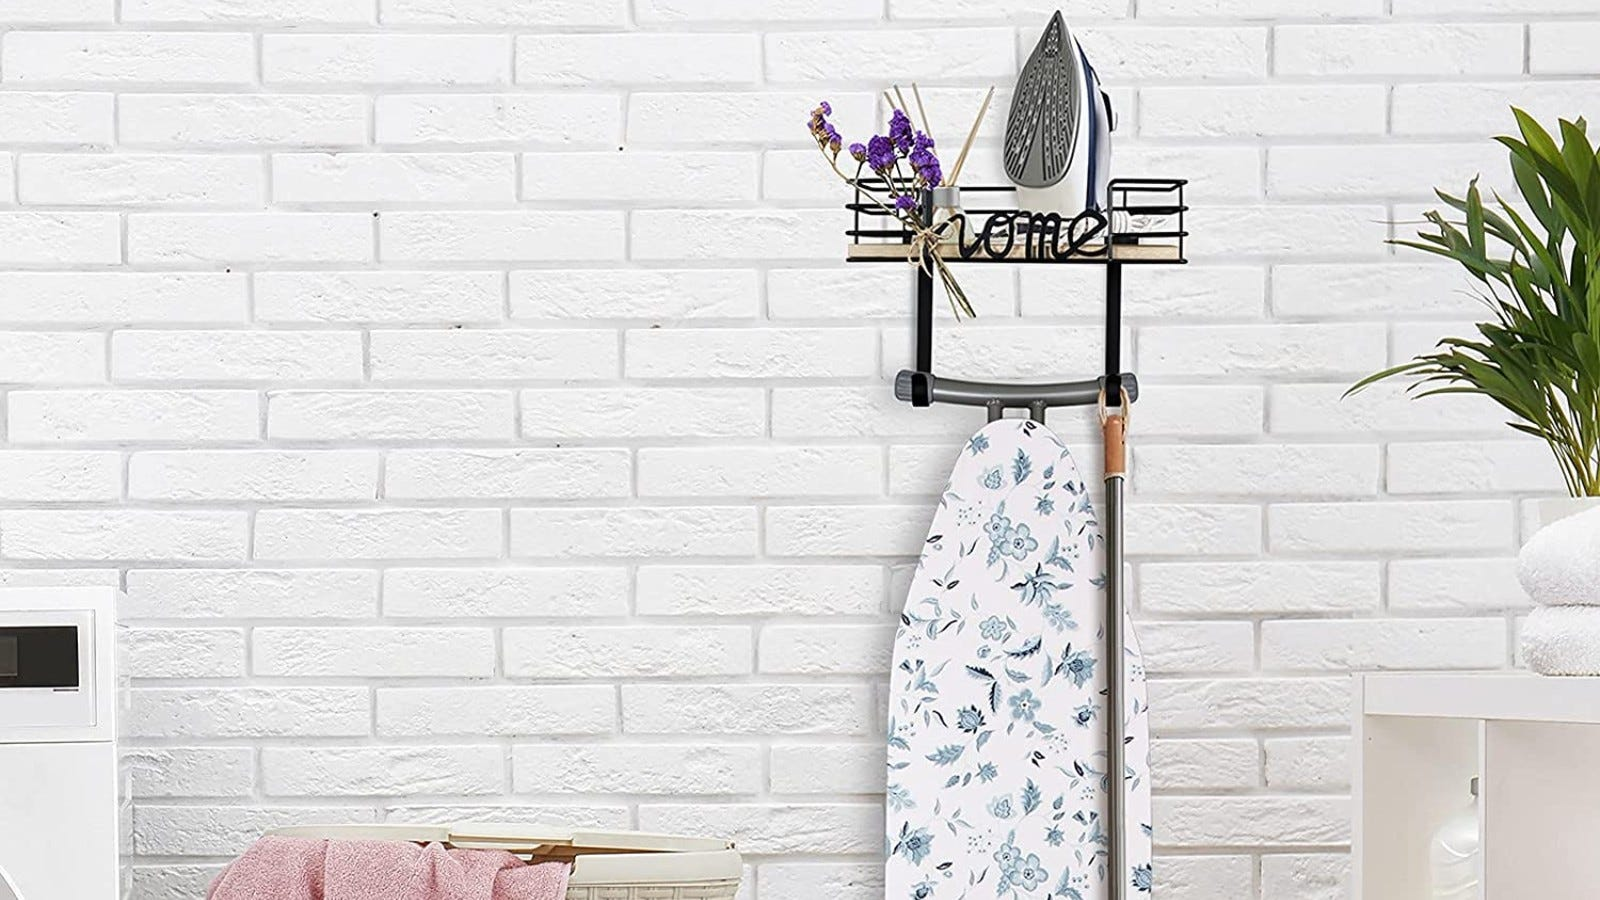 ironing board shelf holder hanging on the wall with an iron and flowers